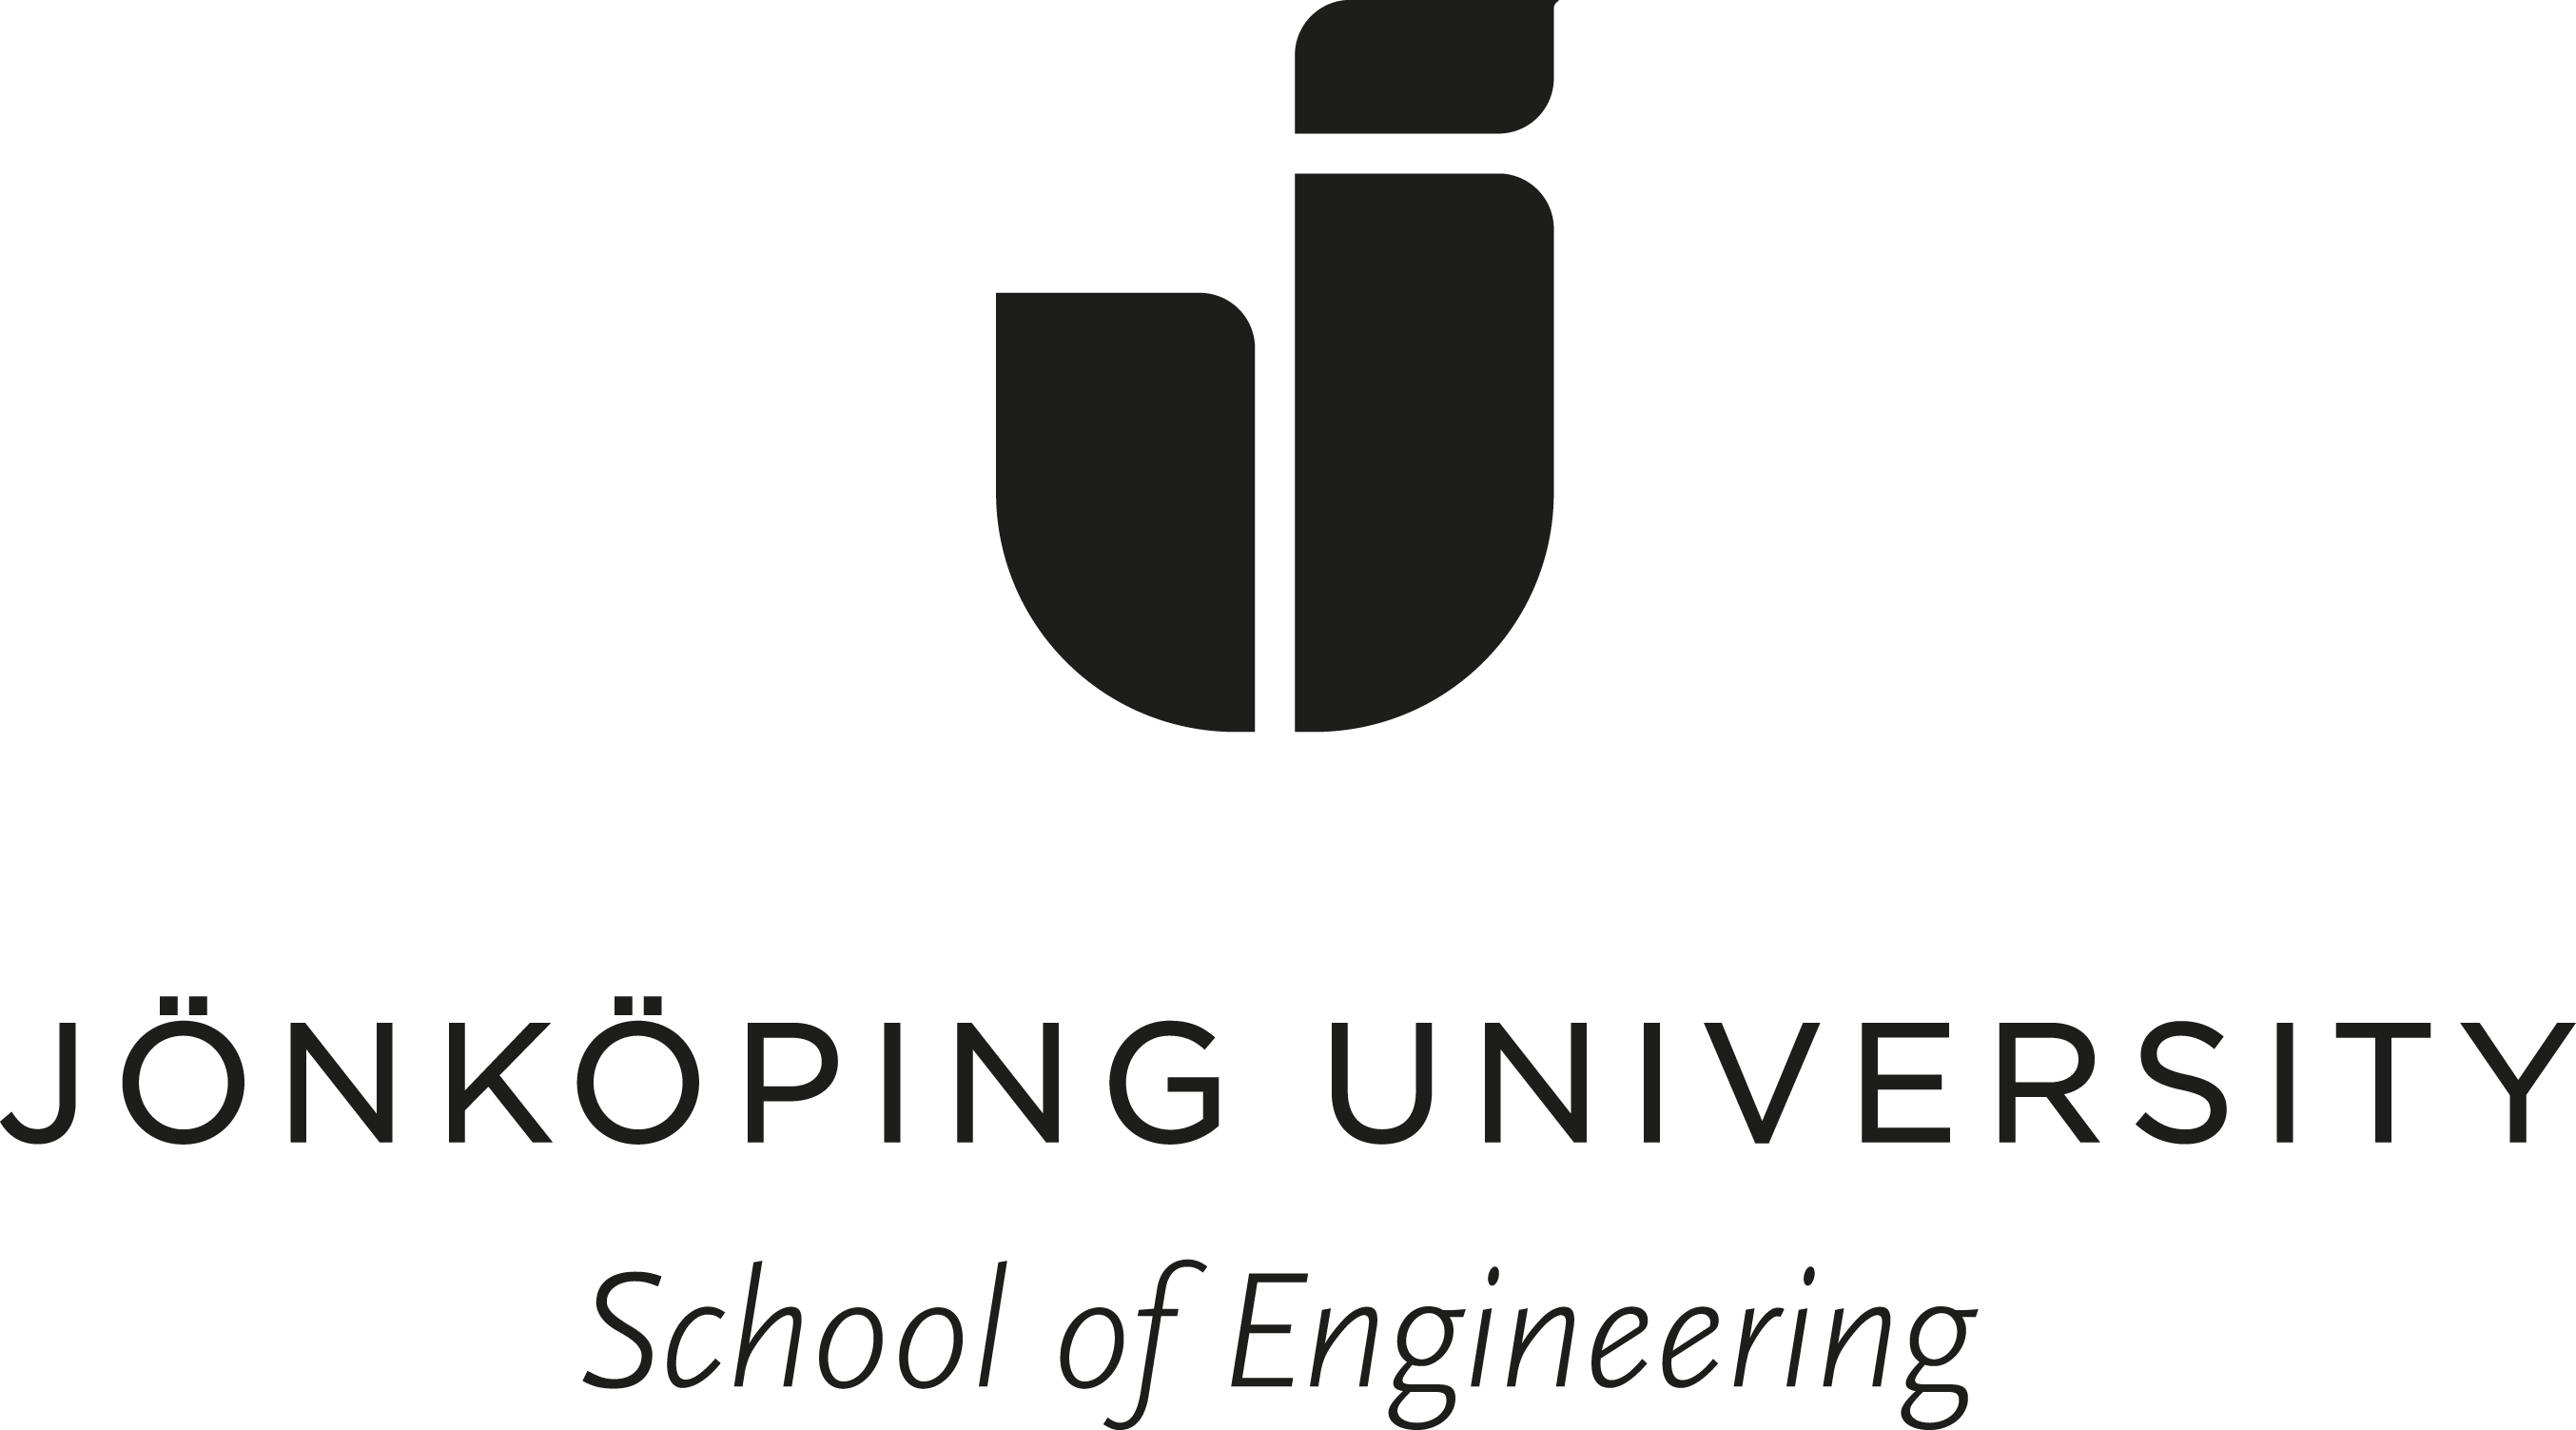 Jönköping University School of Engineering logotyp